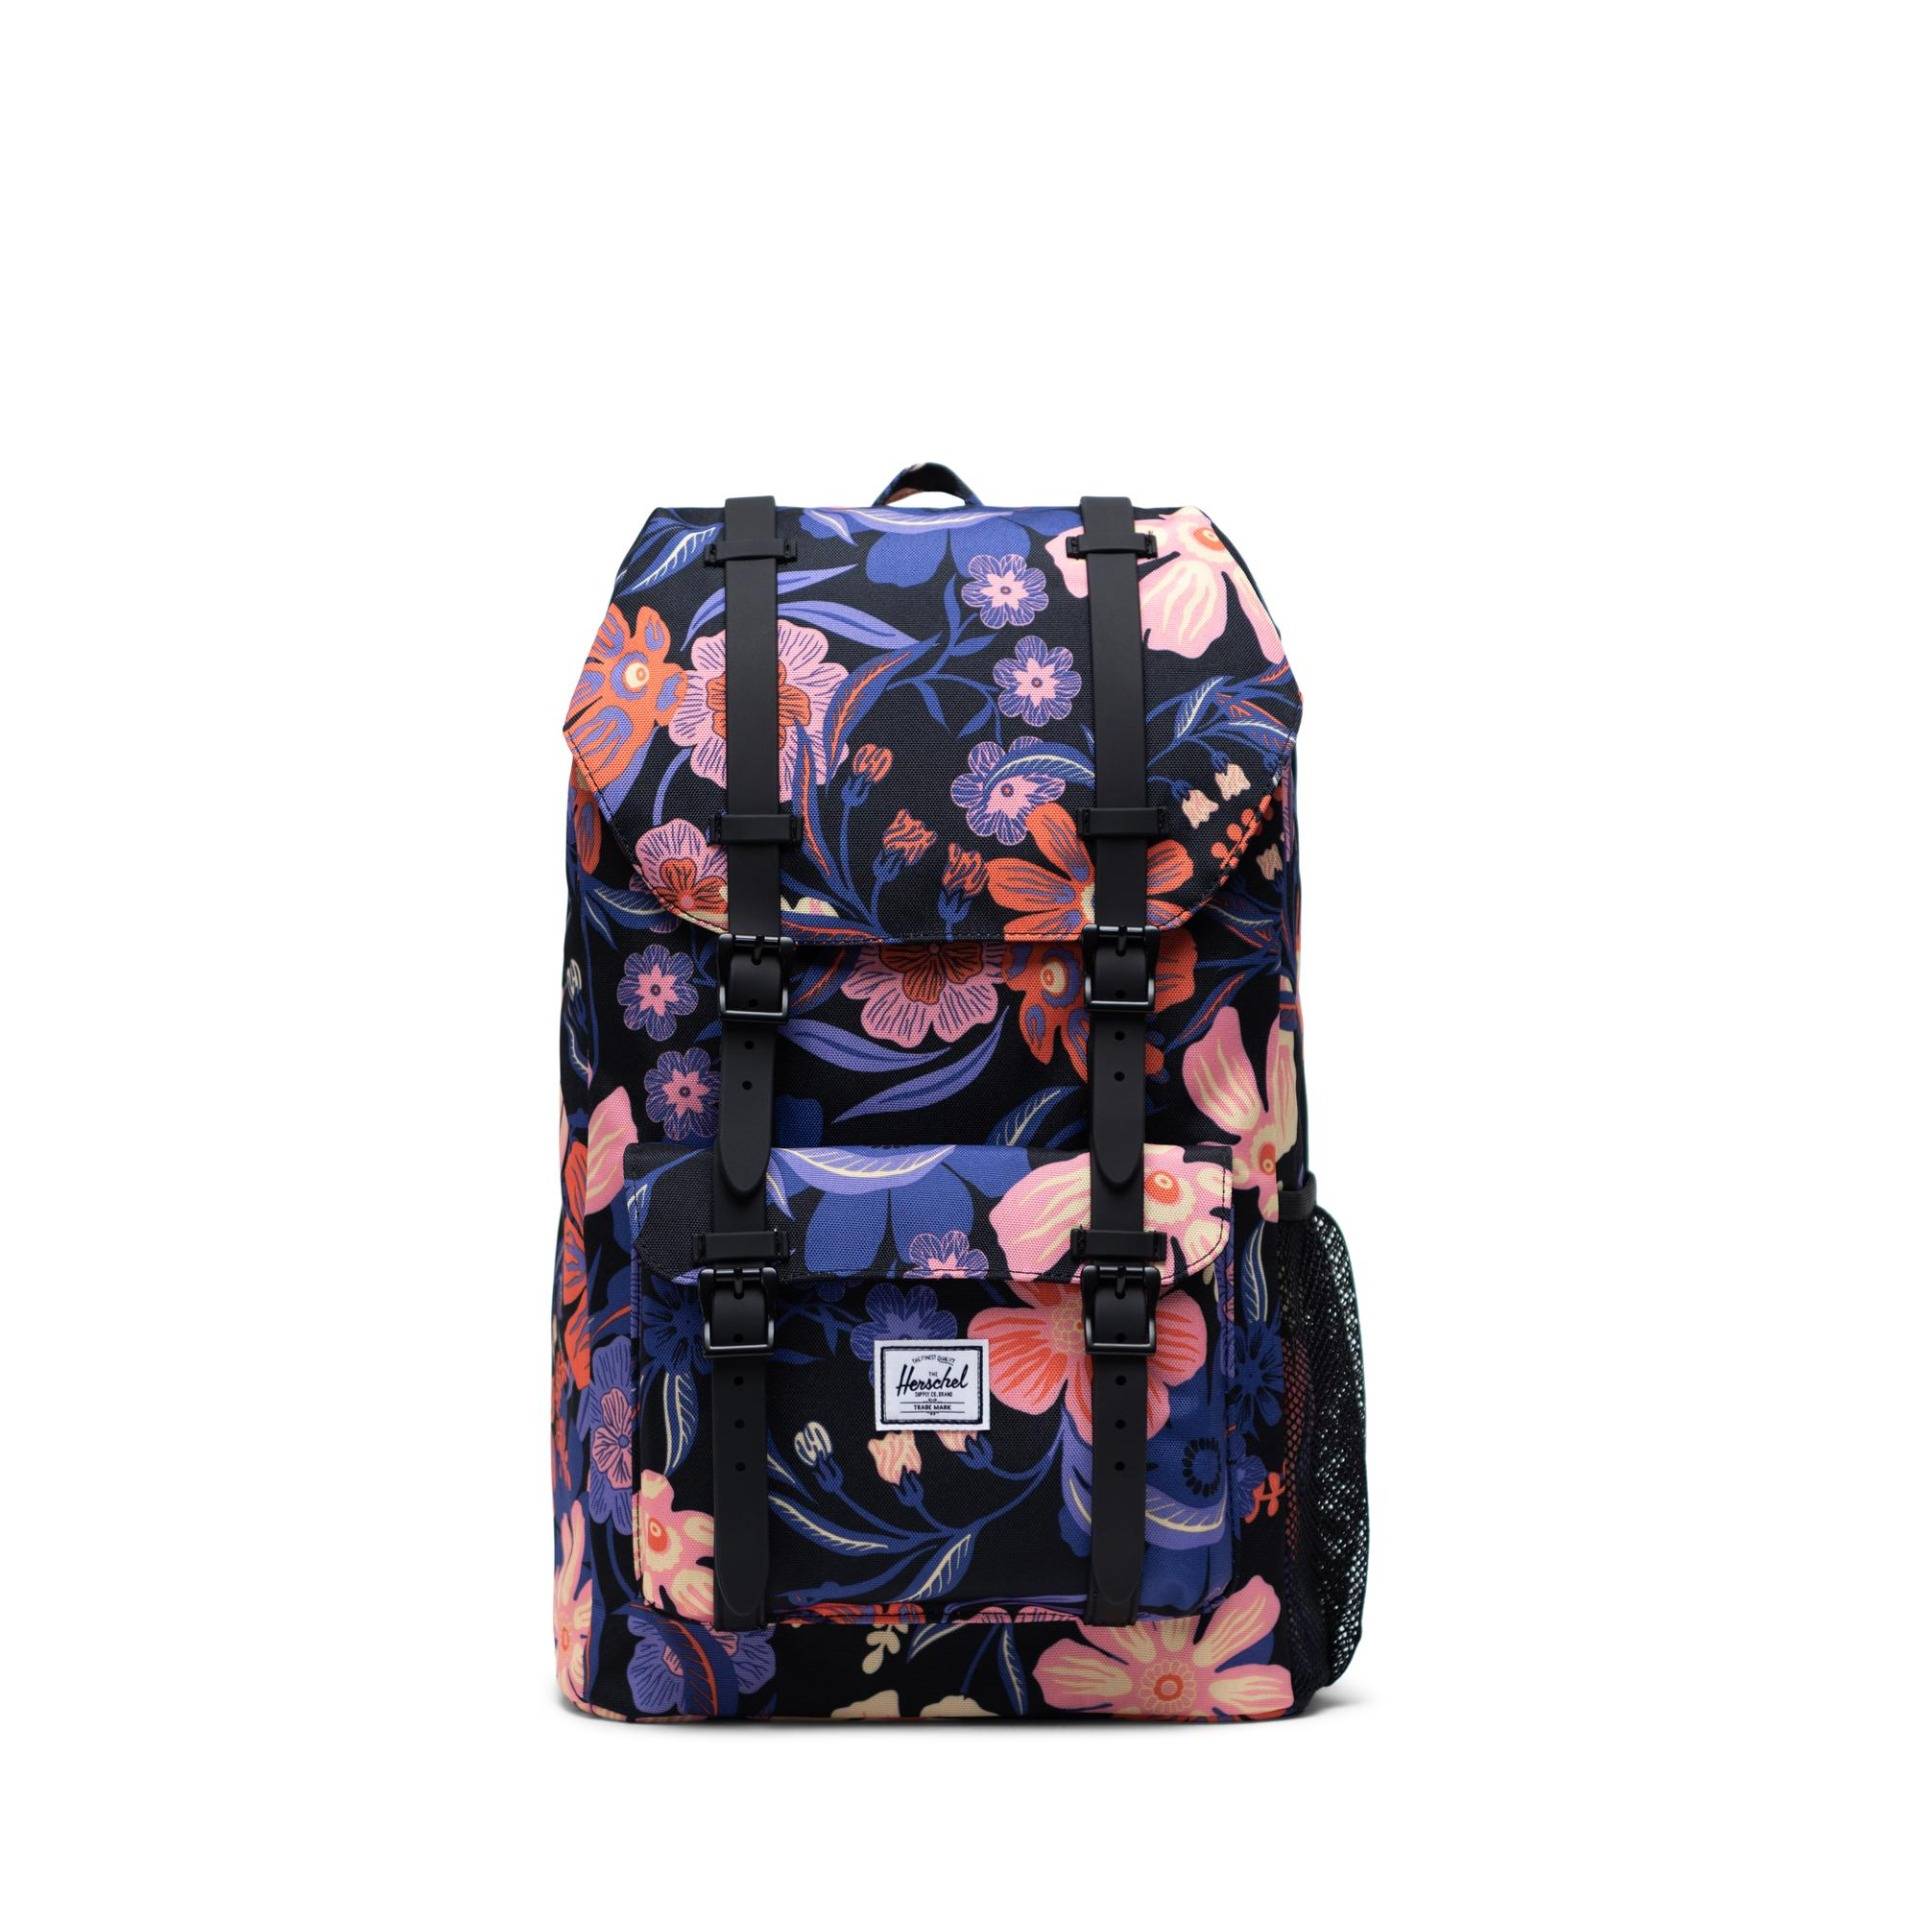 Herschel Little America Youth - Night Floral Black